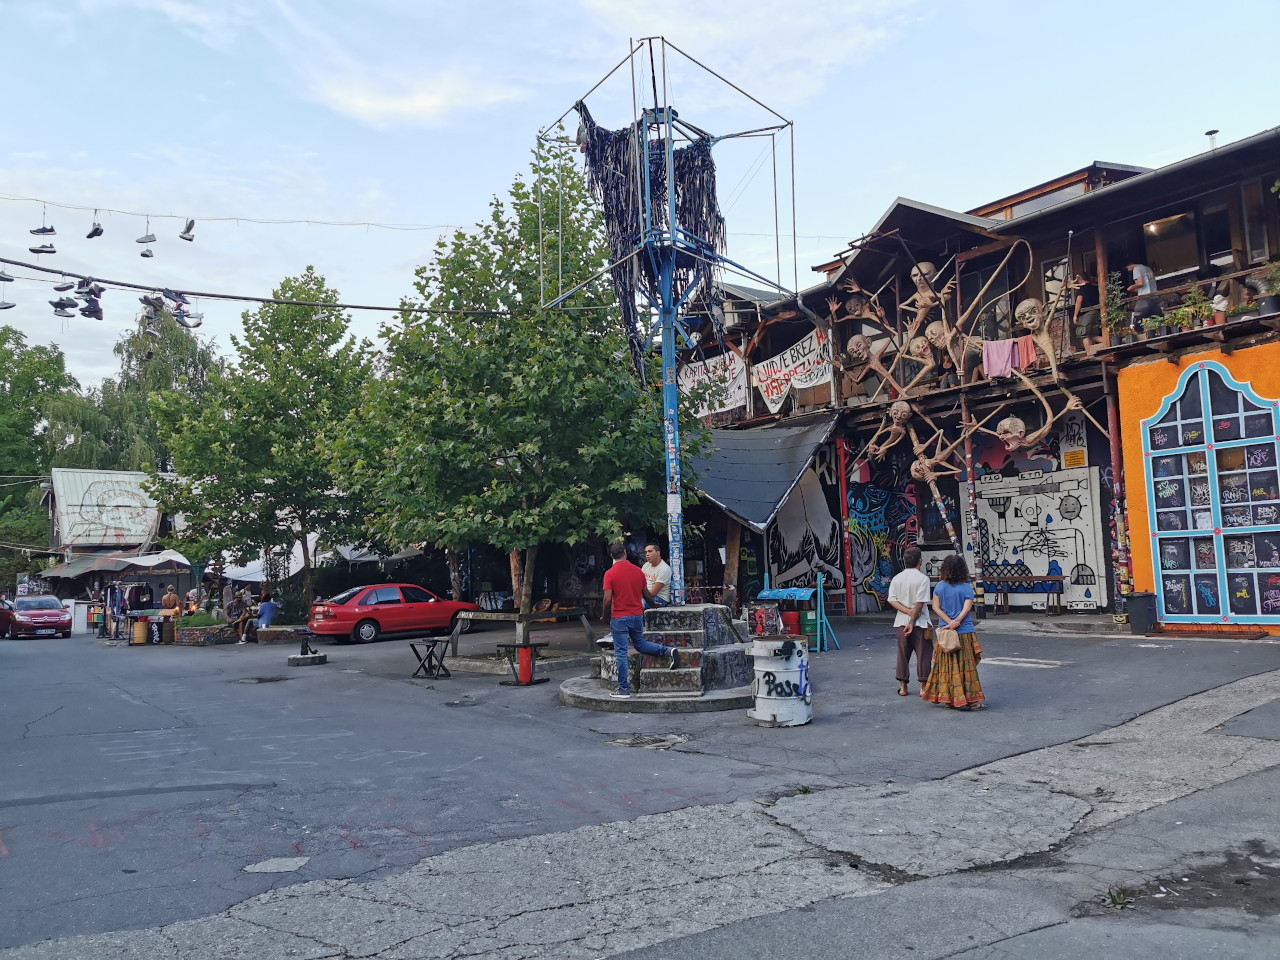 Metelkova city is one of the best off the beaten things to do in Ljubljana Slovenia. Discover the best Ljubljana attractions from this comprehensive article.